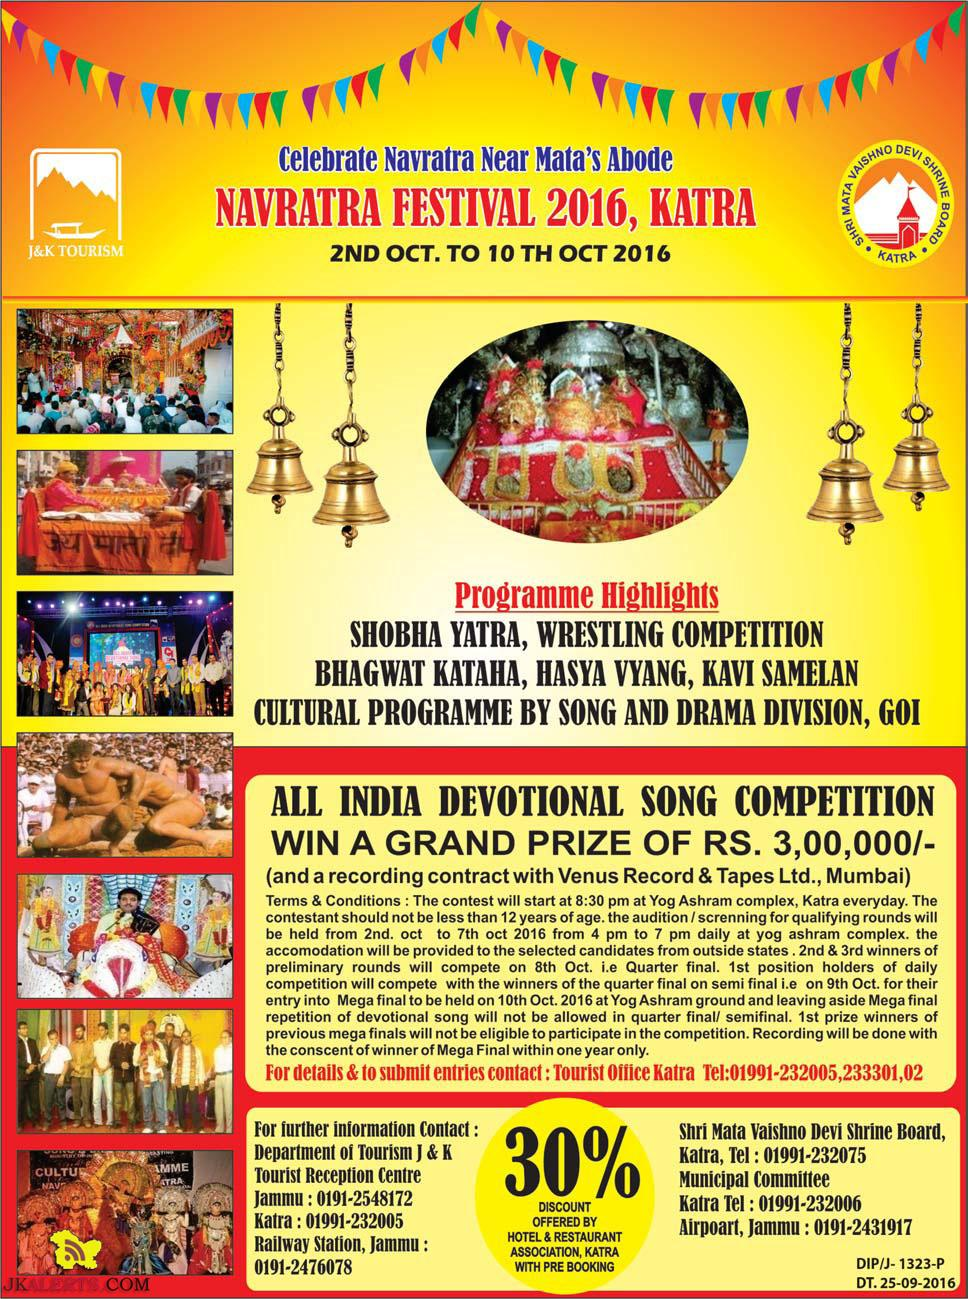 SMVDB NAVRATRA FESTIVAL 2016, KATRA 2ND OCT. TO 10TH OCT 2016